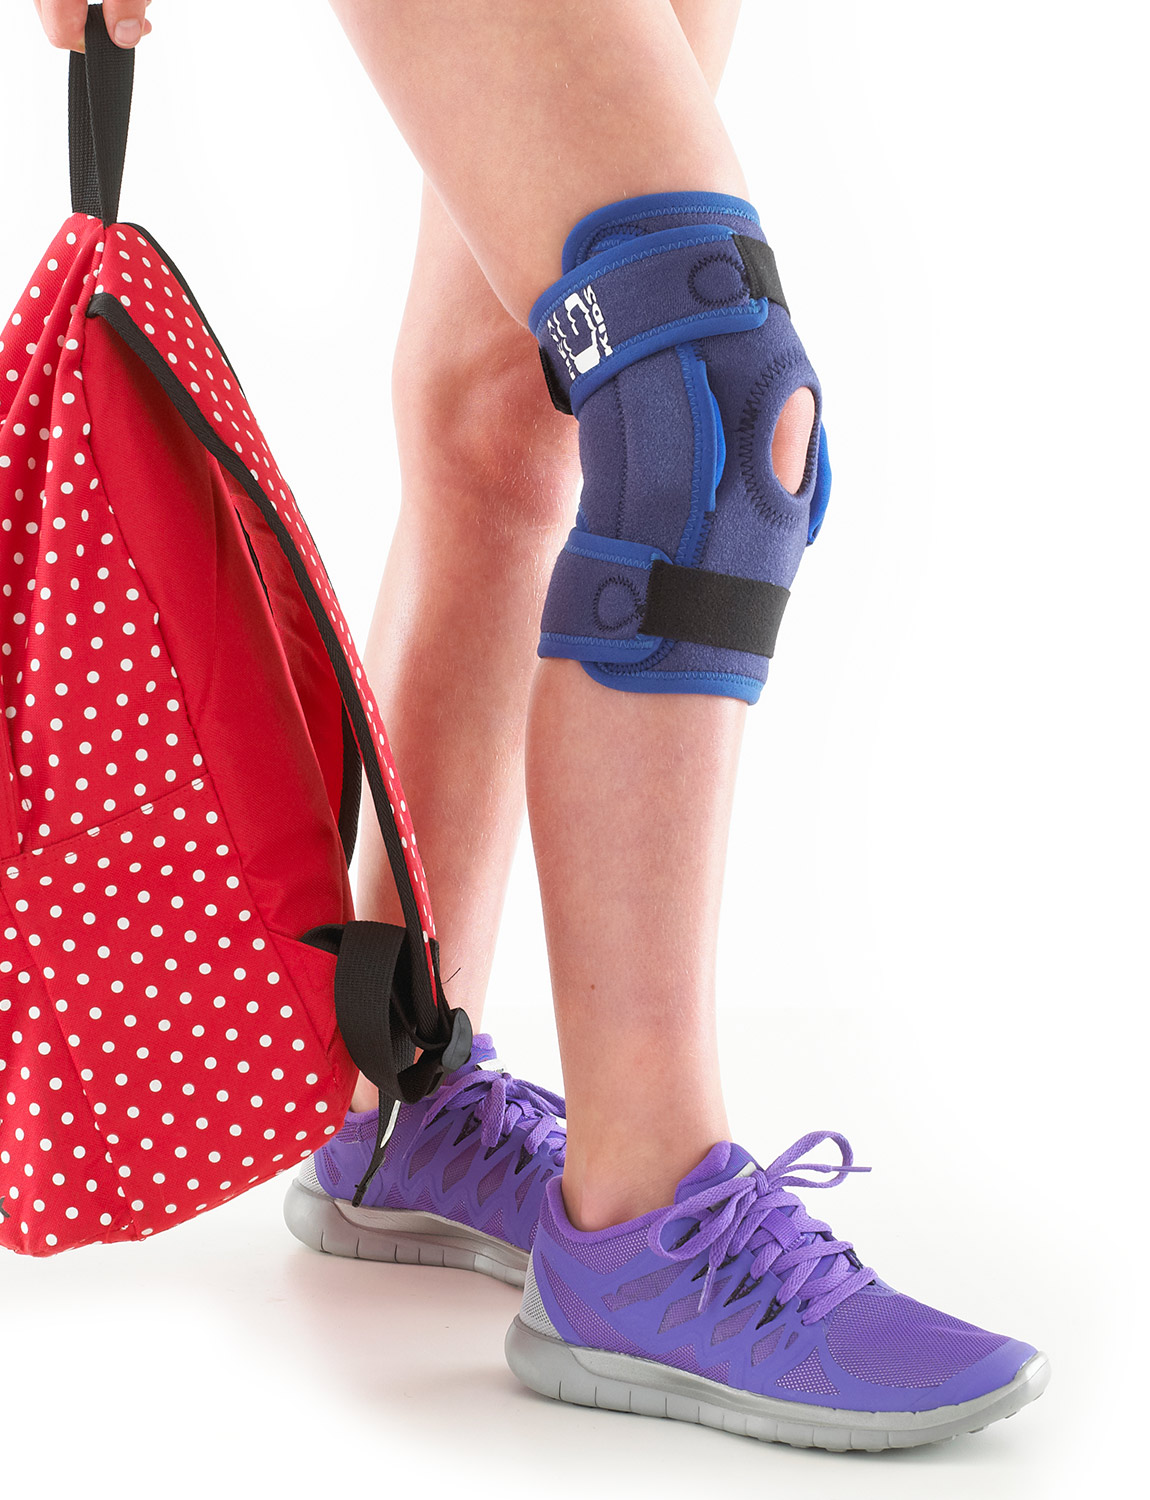 894K - KIDS HINGED KNEE SUPPORT  Specifically designed for the younger wearer and offers a two point geared hinge system to help control flexion and extension movements whilst helping reduce unwanted medial and lateral instability. The open patella area helps with patellar tracking problems. Featuring three adjustable straps, the support helps provide maximum joint protection and stability, making it suitable for use during rehabilitation following trauma or surgery. Weight bearing pressure during movement is more evenly distributed over the joint helping with arthritic and meniscus pain. The durable, heat therapeutic neoprene helps with arthritic knees, chronic aches and stiffness.